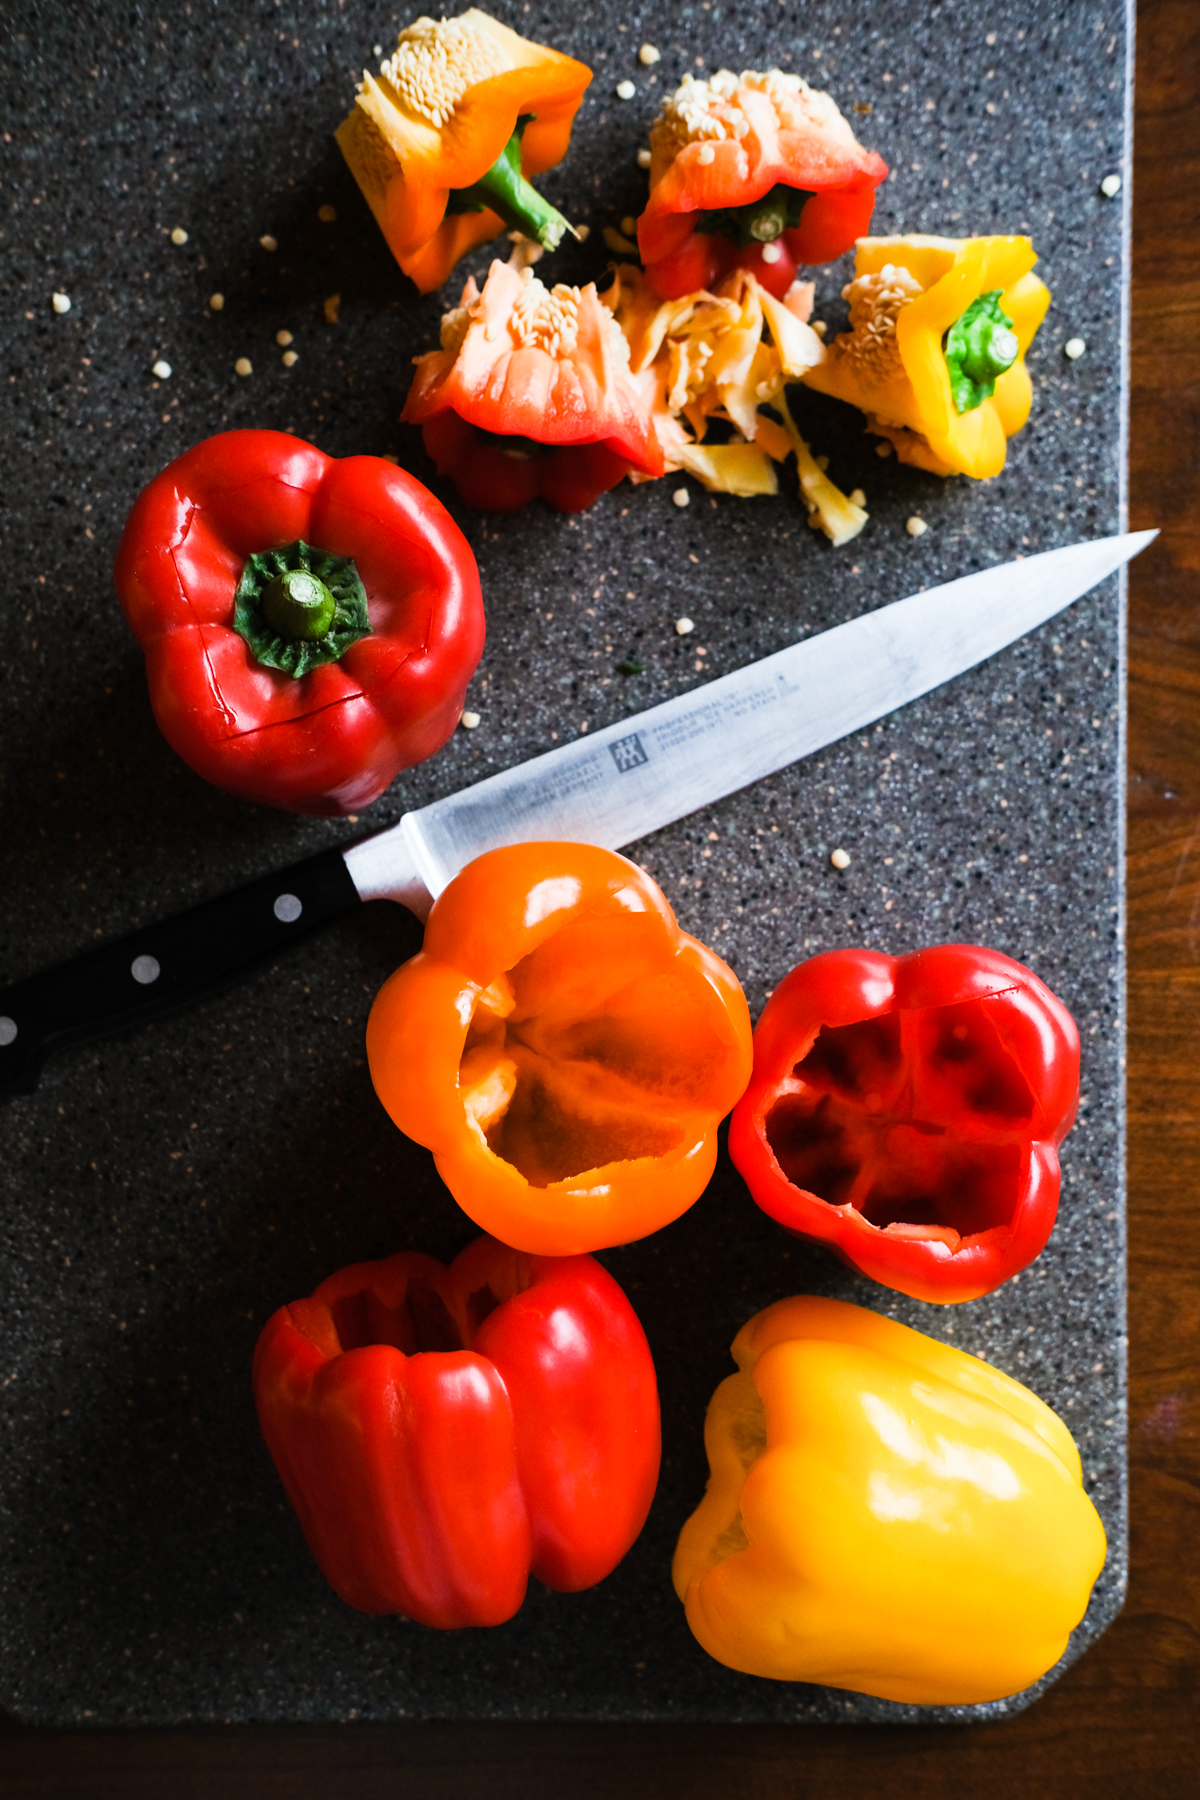 cutting peppers to make stuffed peppers